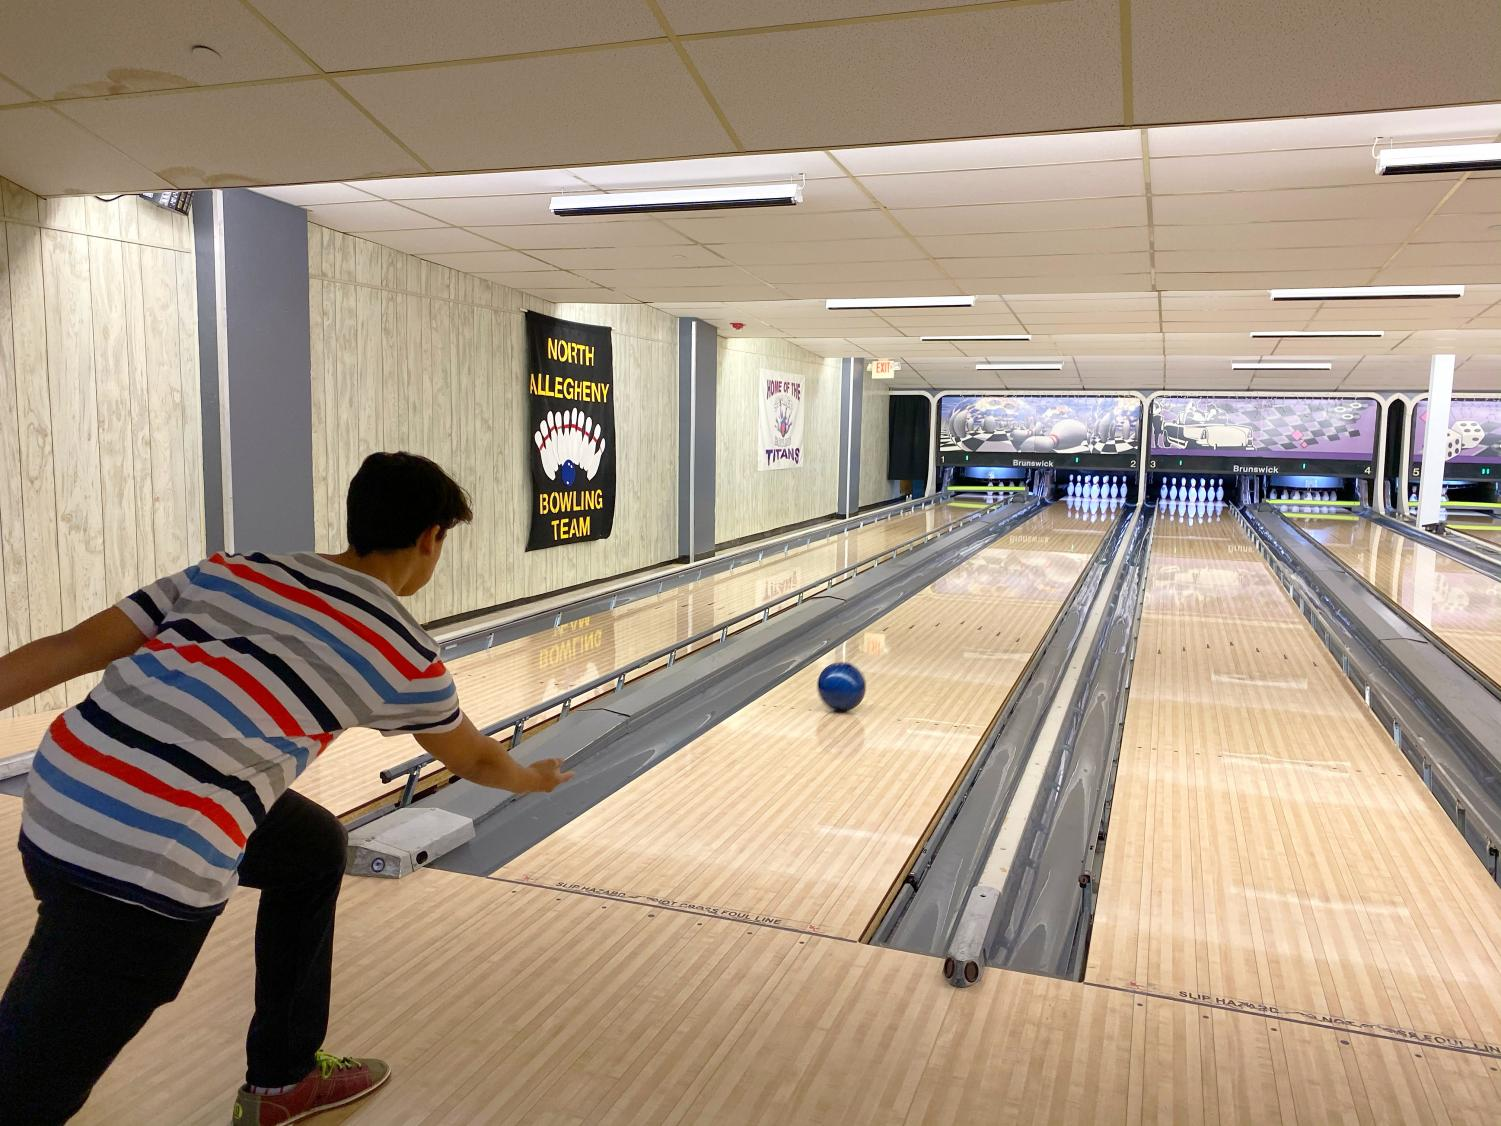 NASH junior Yaseen Sabil aims for a strike last Friday at Perry Park Lanes.  Sabil and others in the Muslim Student Association hosted a meeting at the bowling alley to build community around friendly competition, food, and fun.